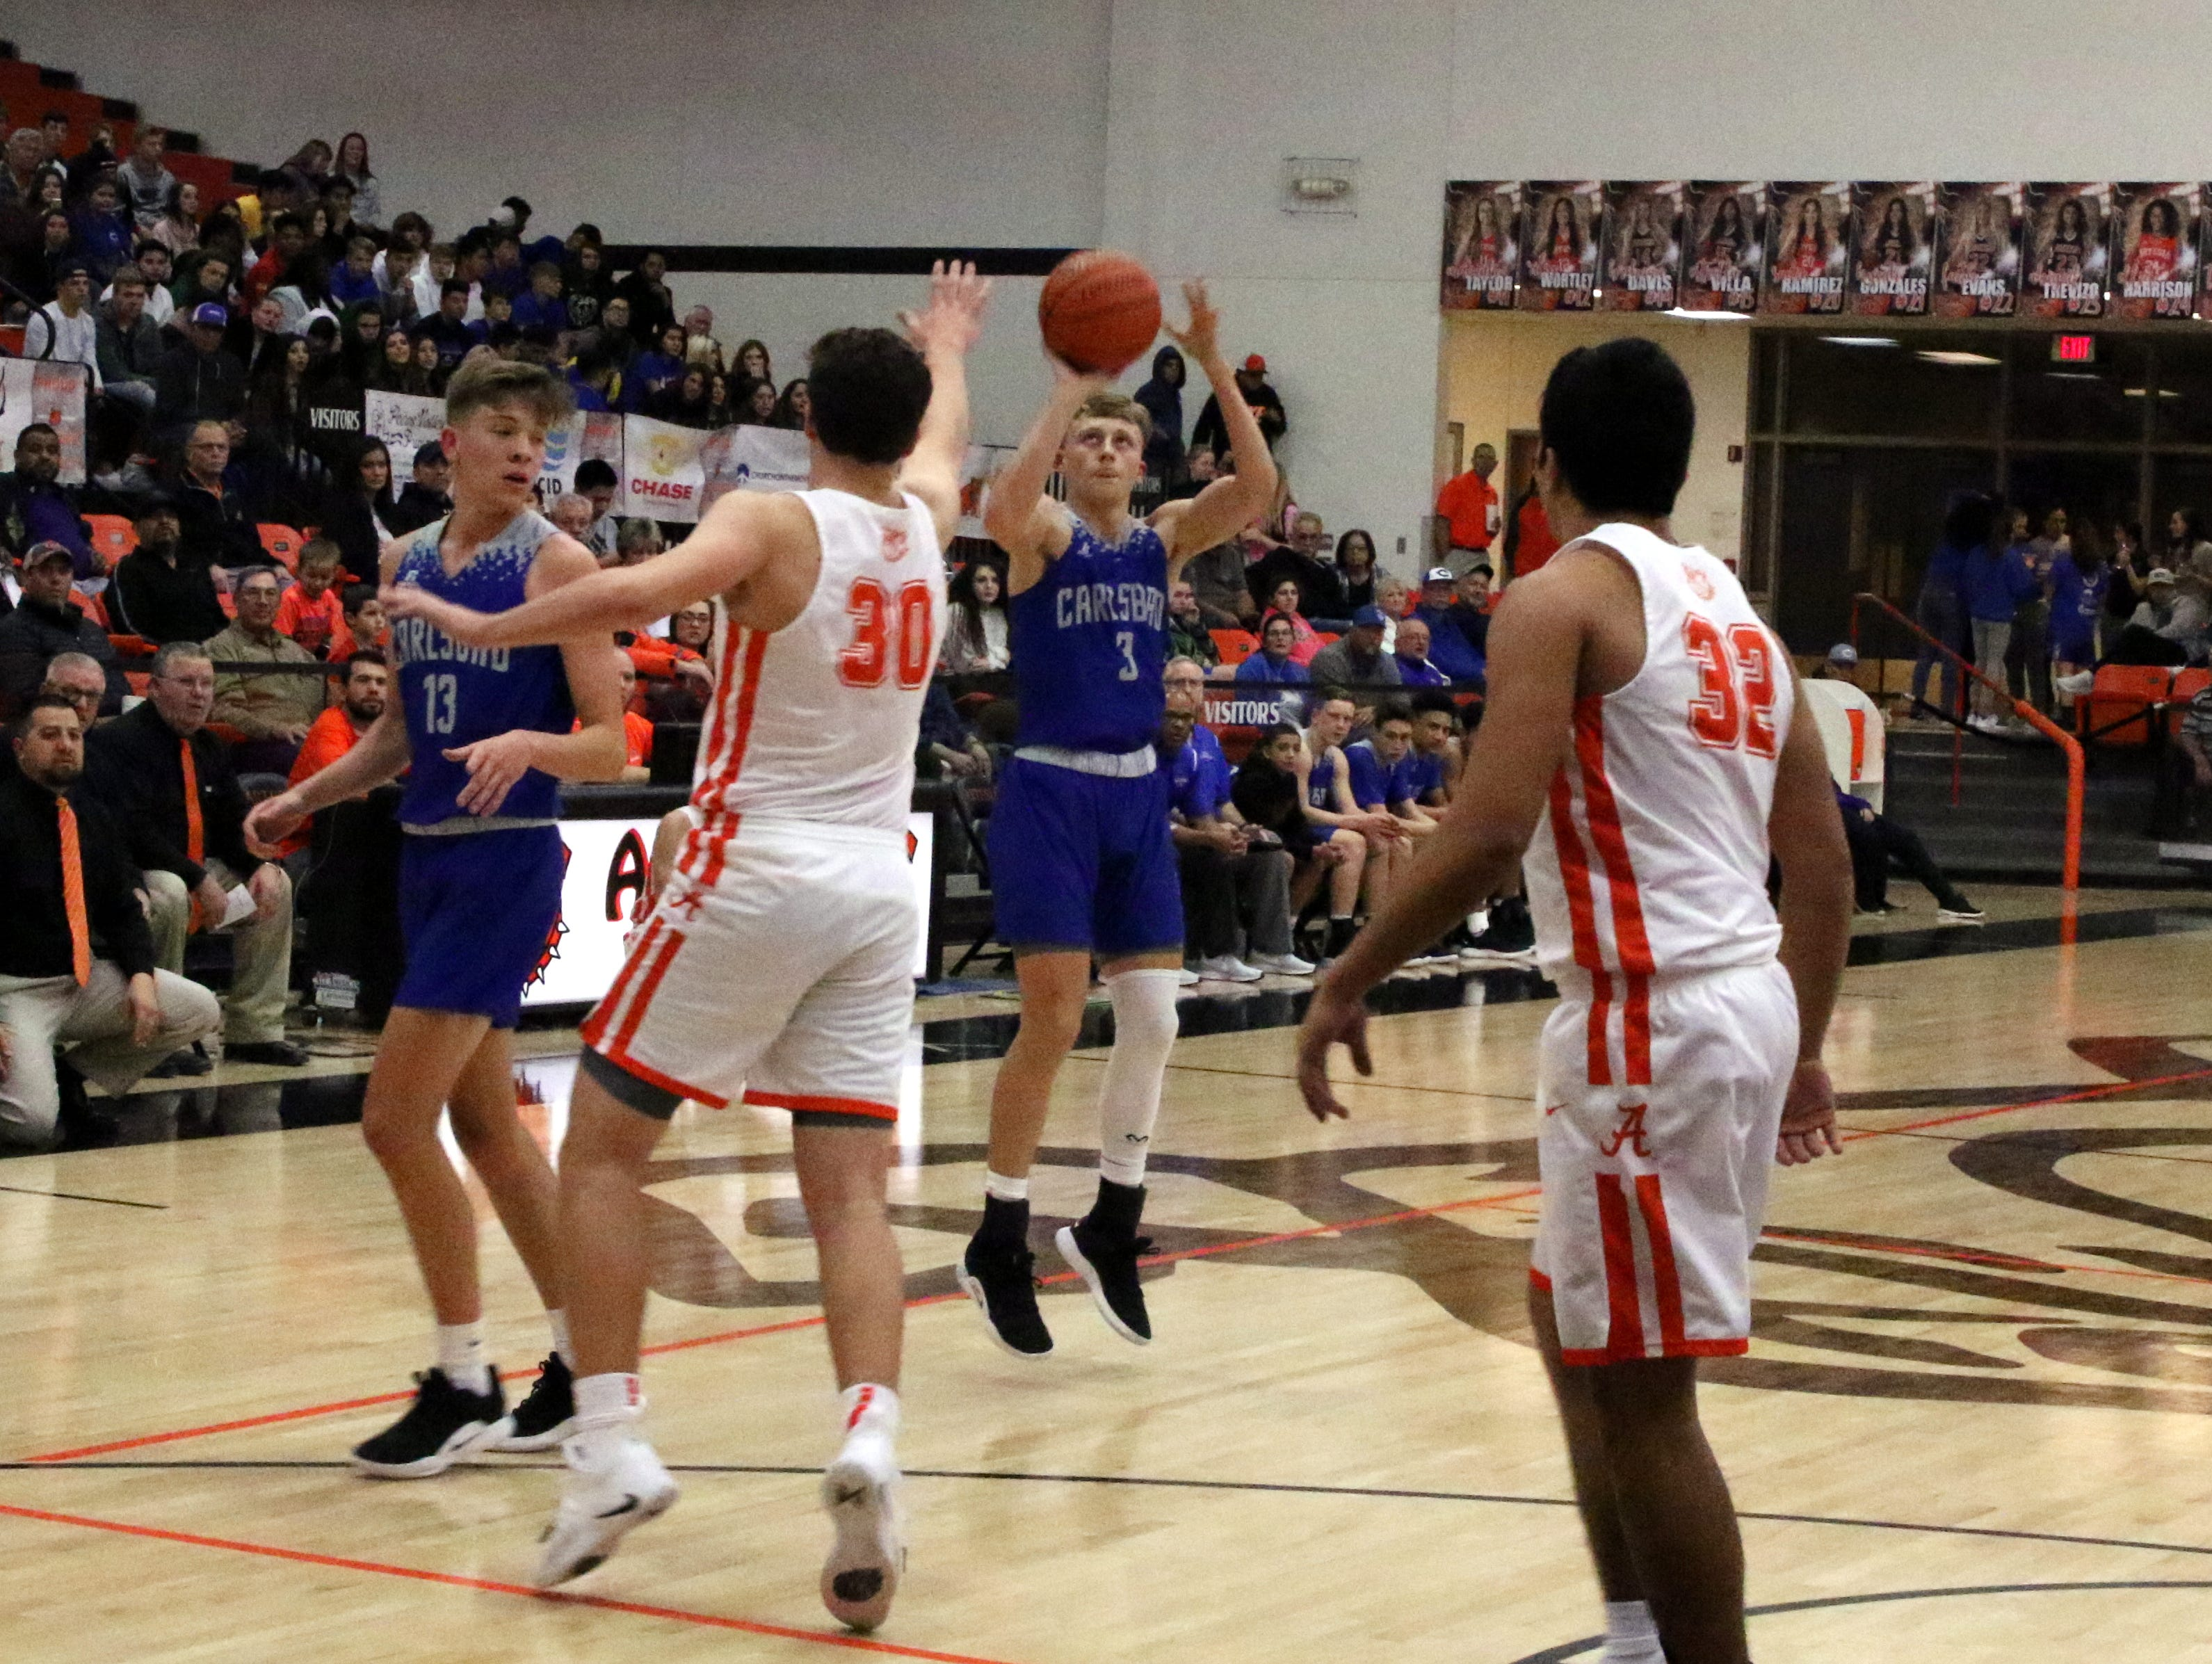 Carlsbad's Riley Hestand take a 3-point shot during Friday's game. He finished with 13 points and Carlsbad swept the season series with a 59-56 win.